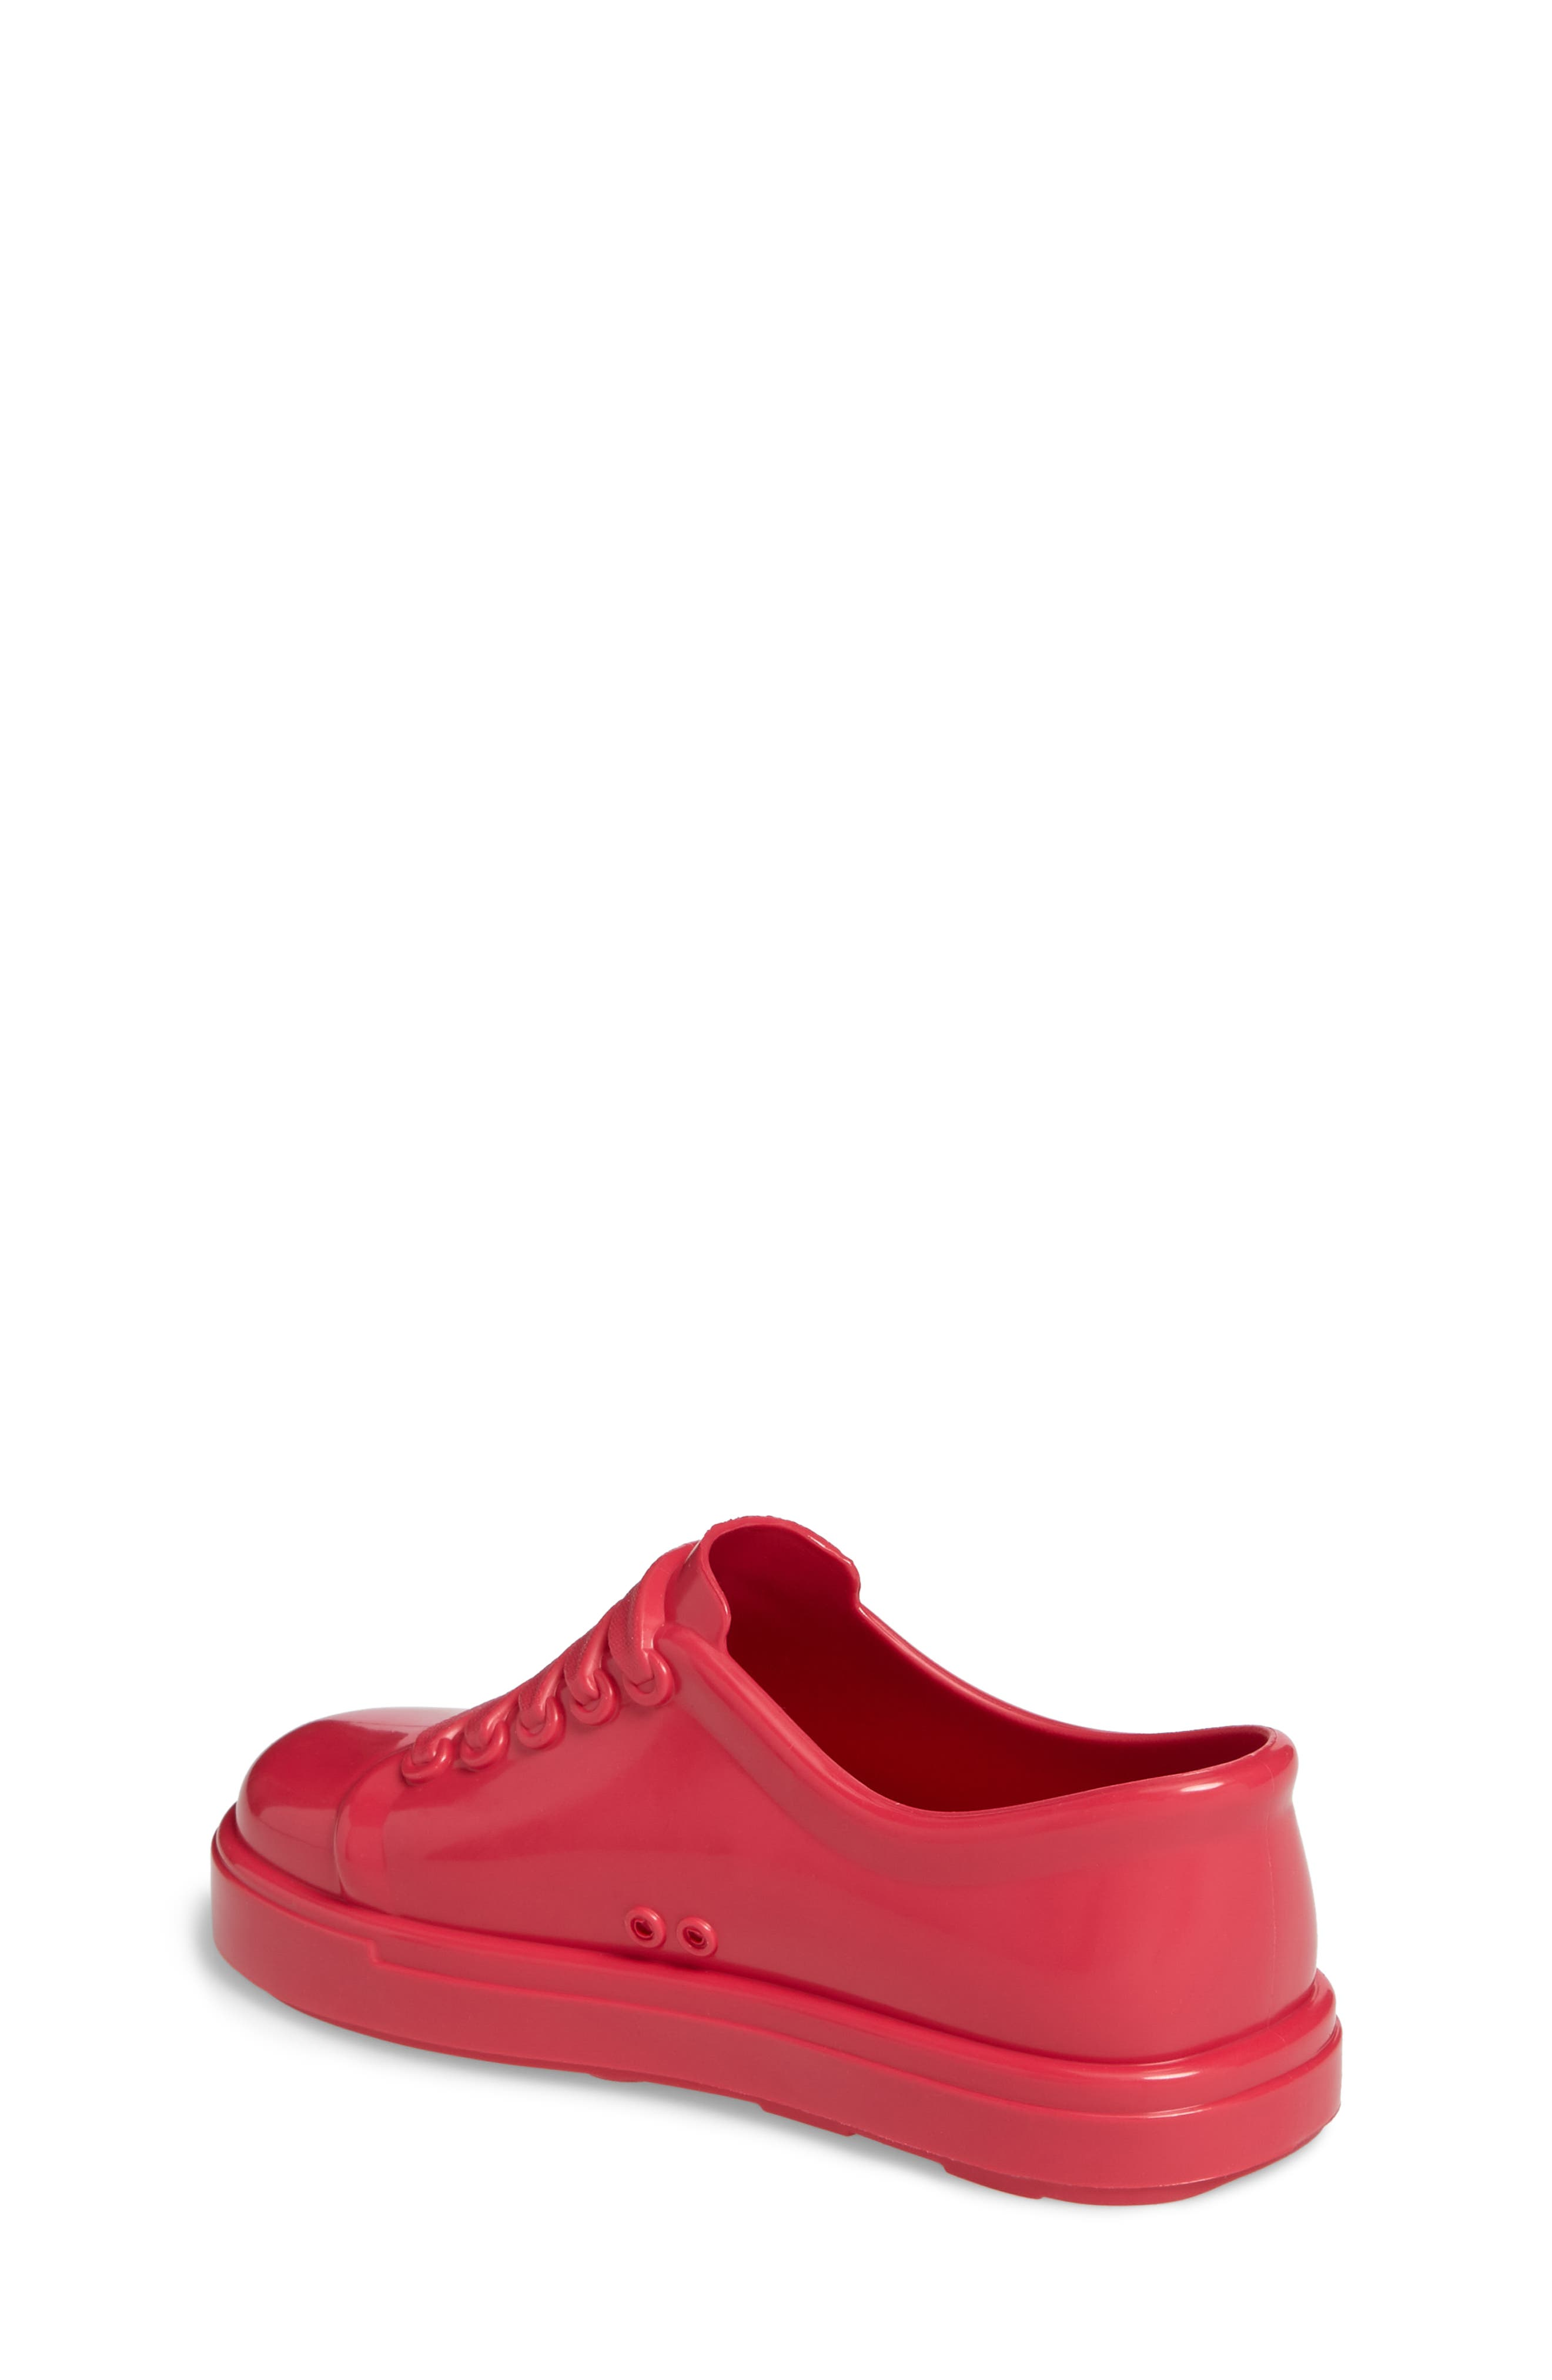 Be Slip-On Sneaker,                             Alternate thumbnail 2, color,                             Fuchsia